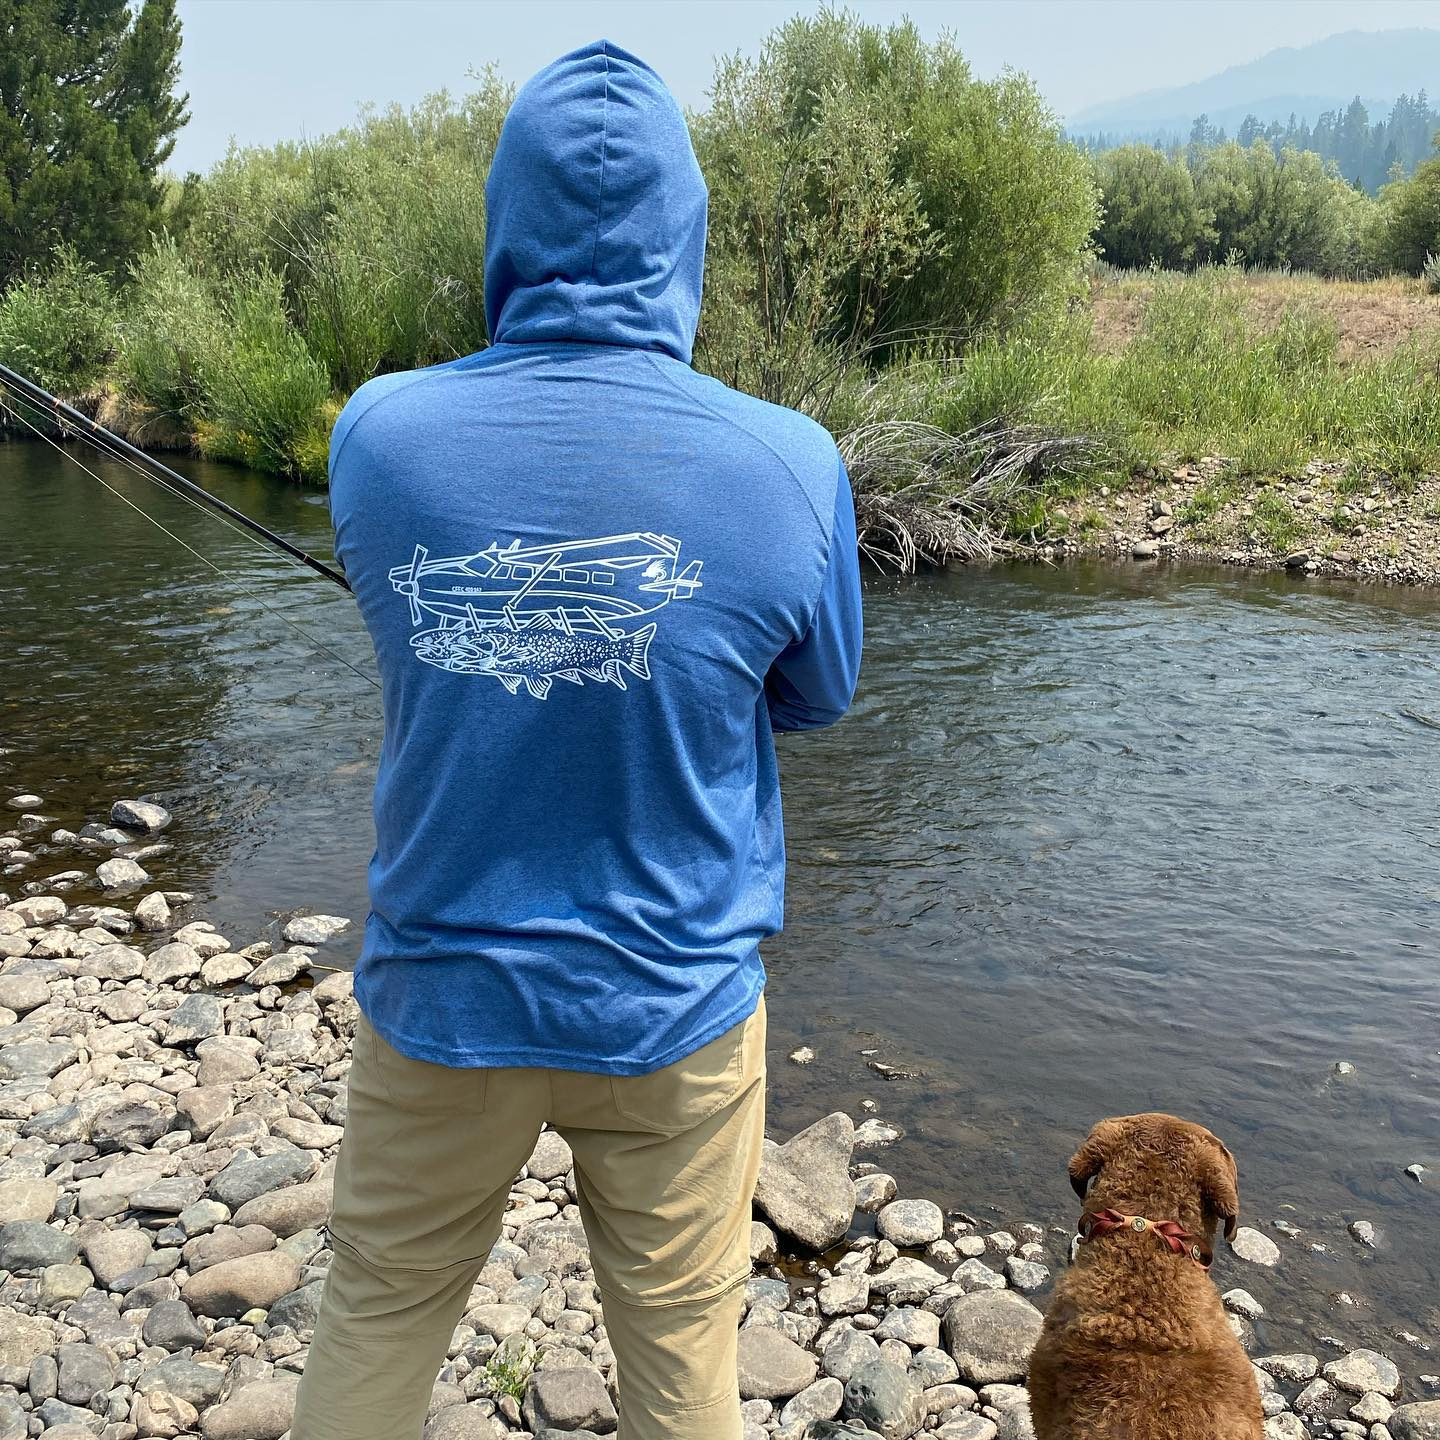 Out scouting and working with the new guide dog Raven . She's a natural 🤙🏼…Shout out to @theconnectiveflyfishco on the new sun hoody 🏼. You can pick them up locally @tahoeflyfishingoutfitters !#scottflyrods #alpineflyfishing #tahoeflyfishingoutfitters #fishpondusa #simmsfishing #fishca #getoutside #flyfishingdogs #umpqua #dryfly #risedesigns